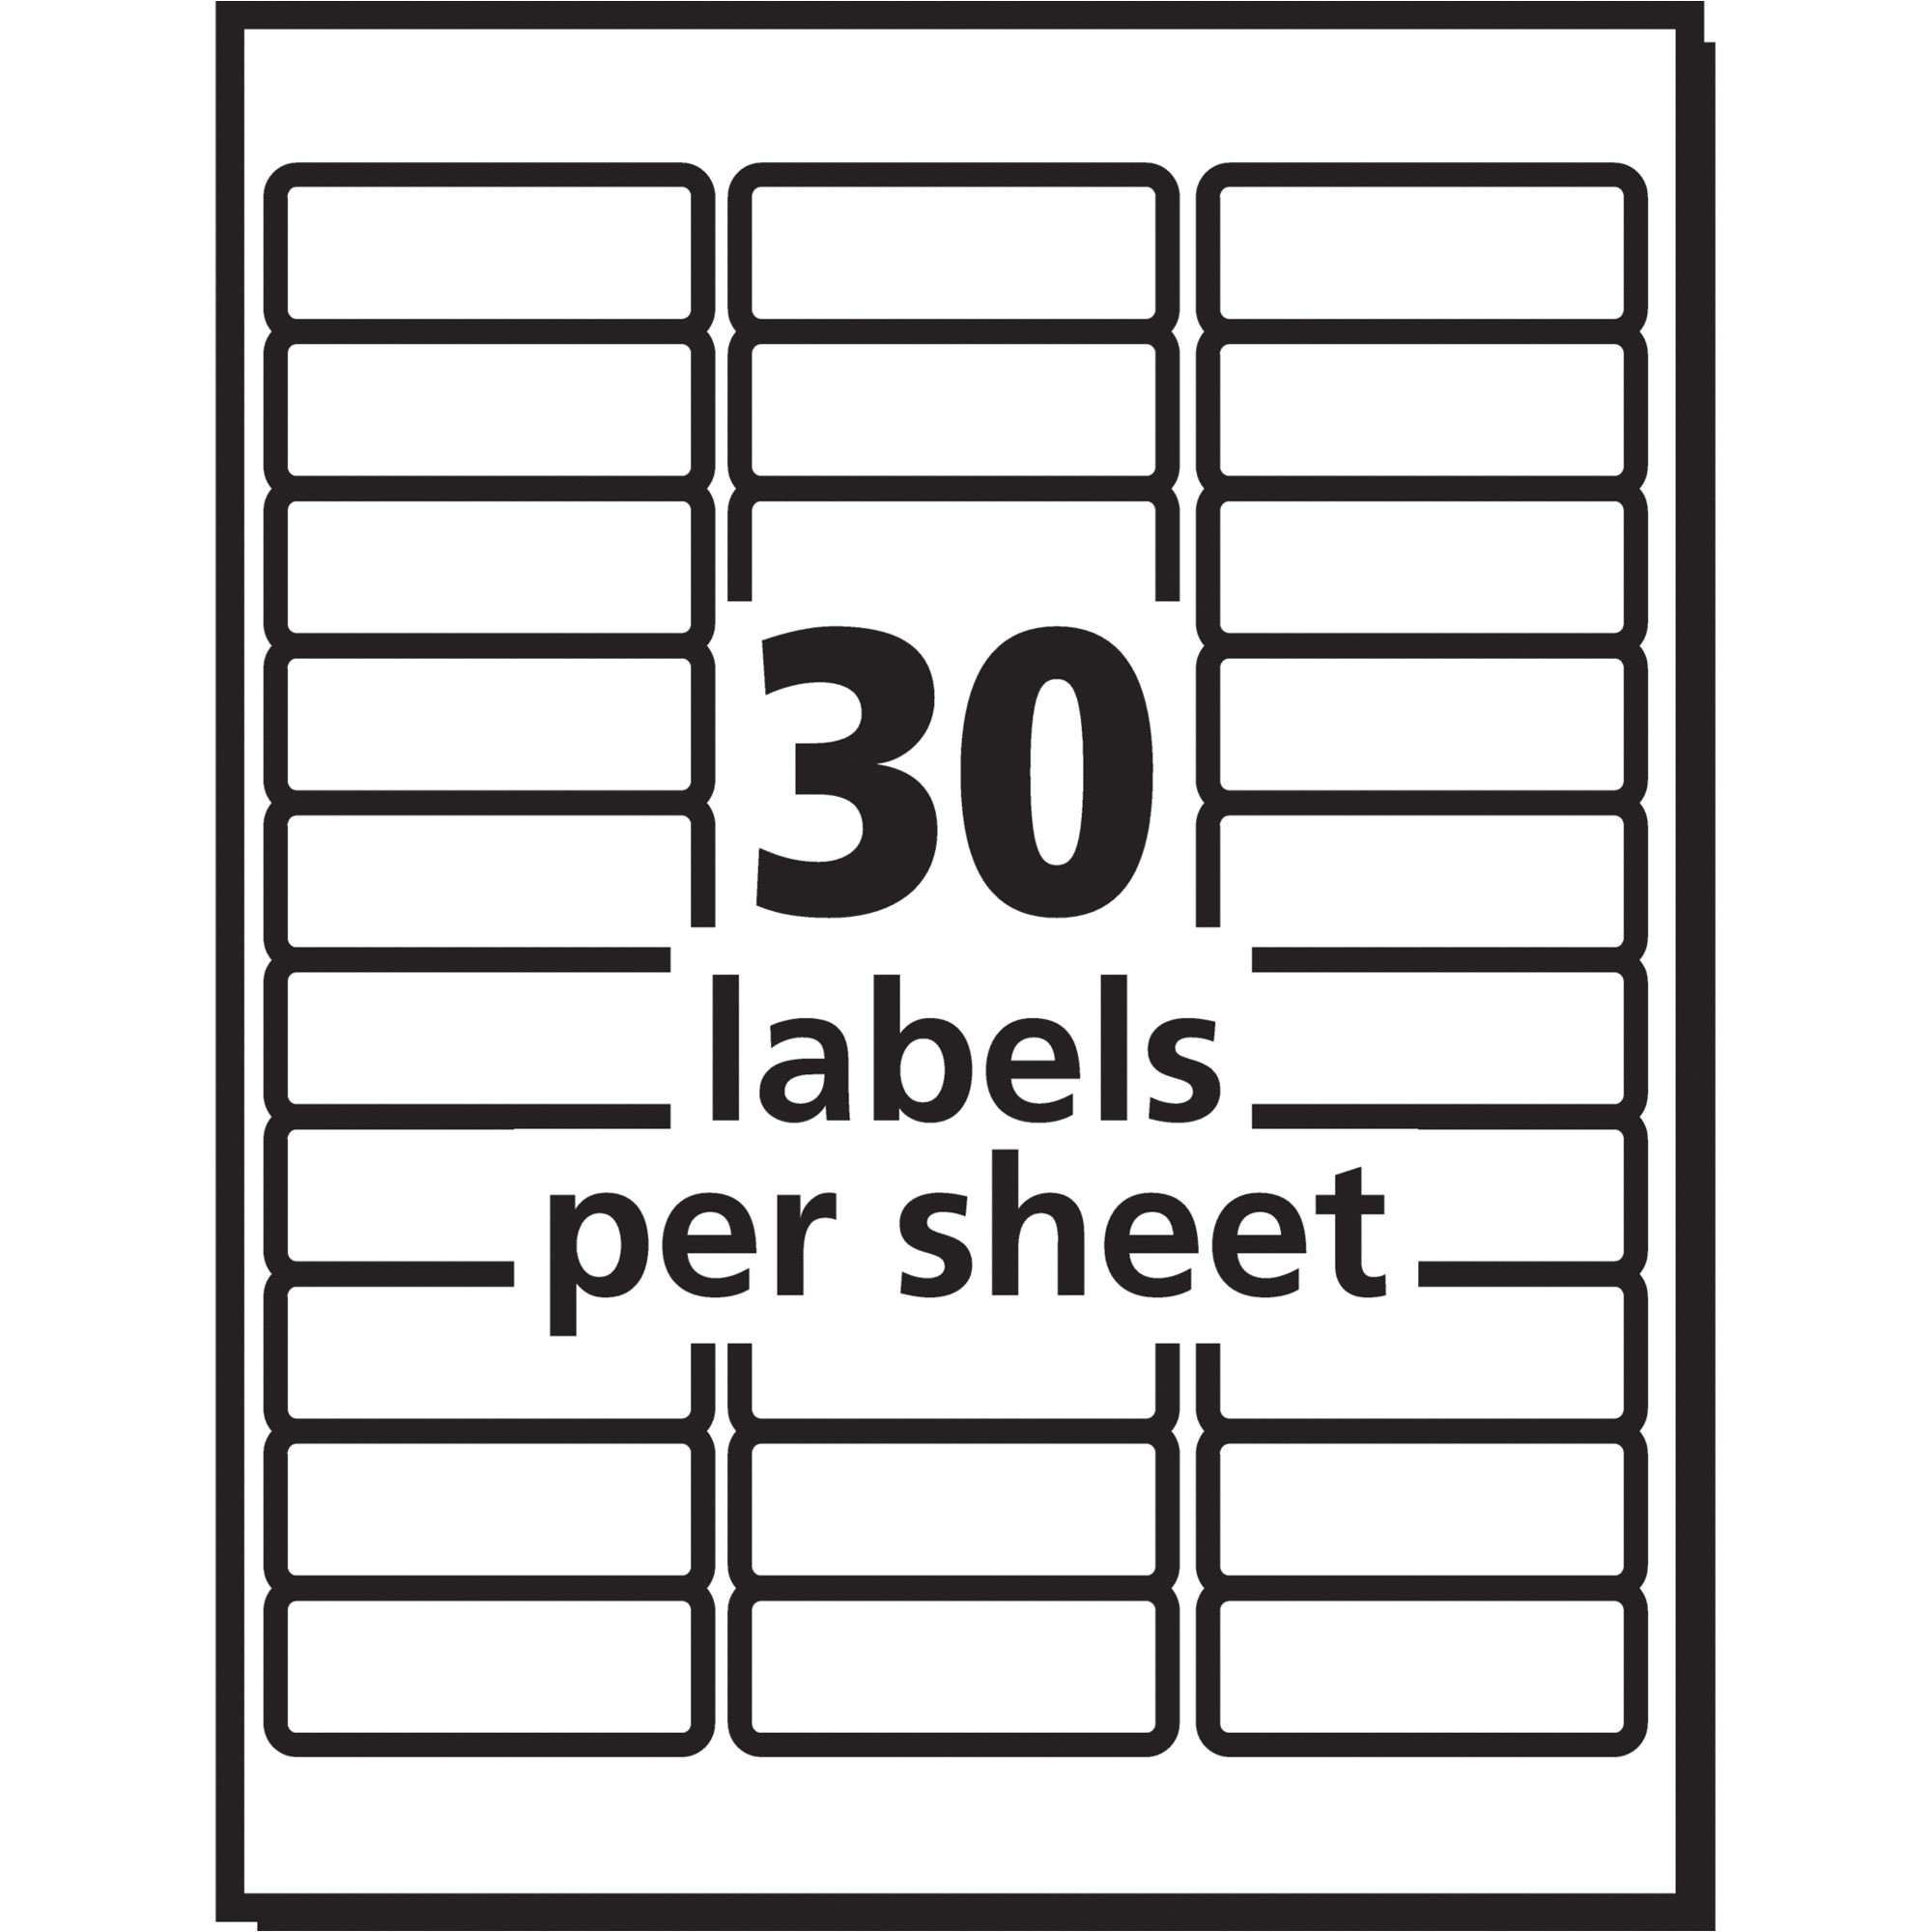 avery 5960 address label template